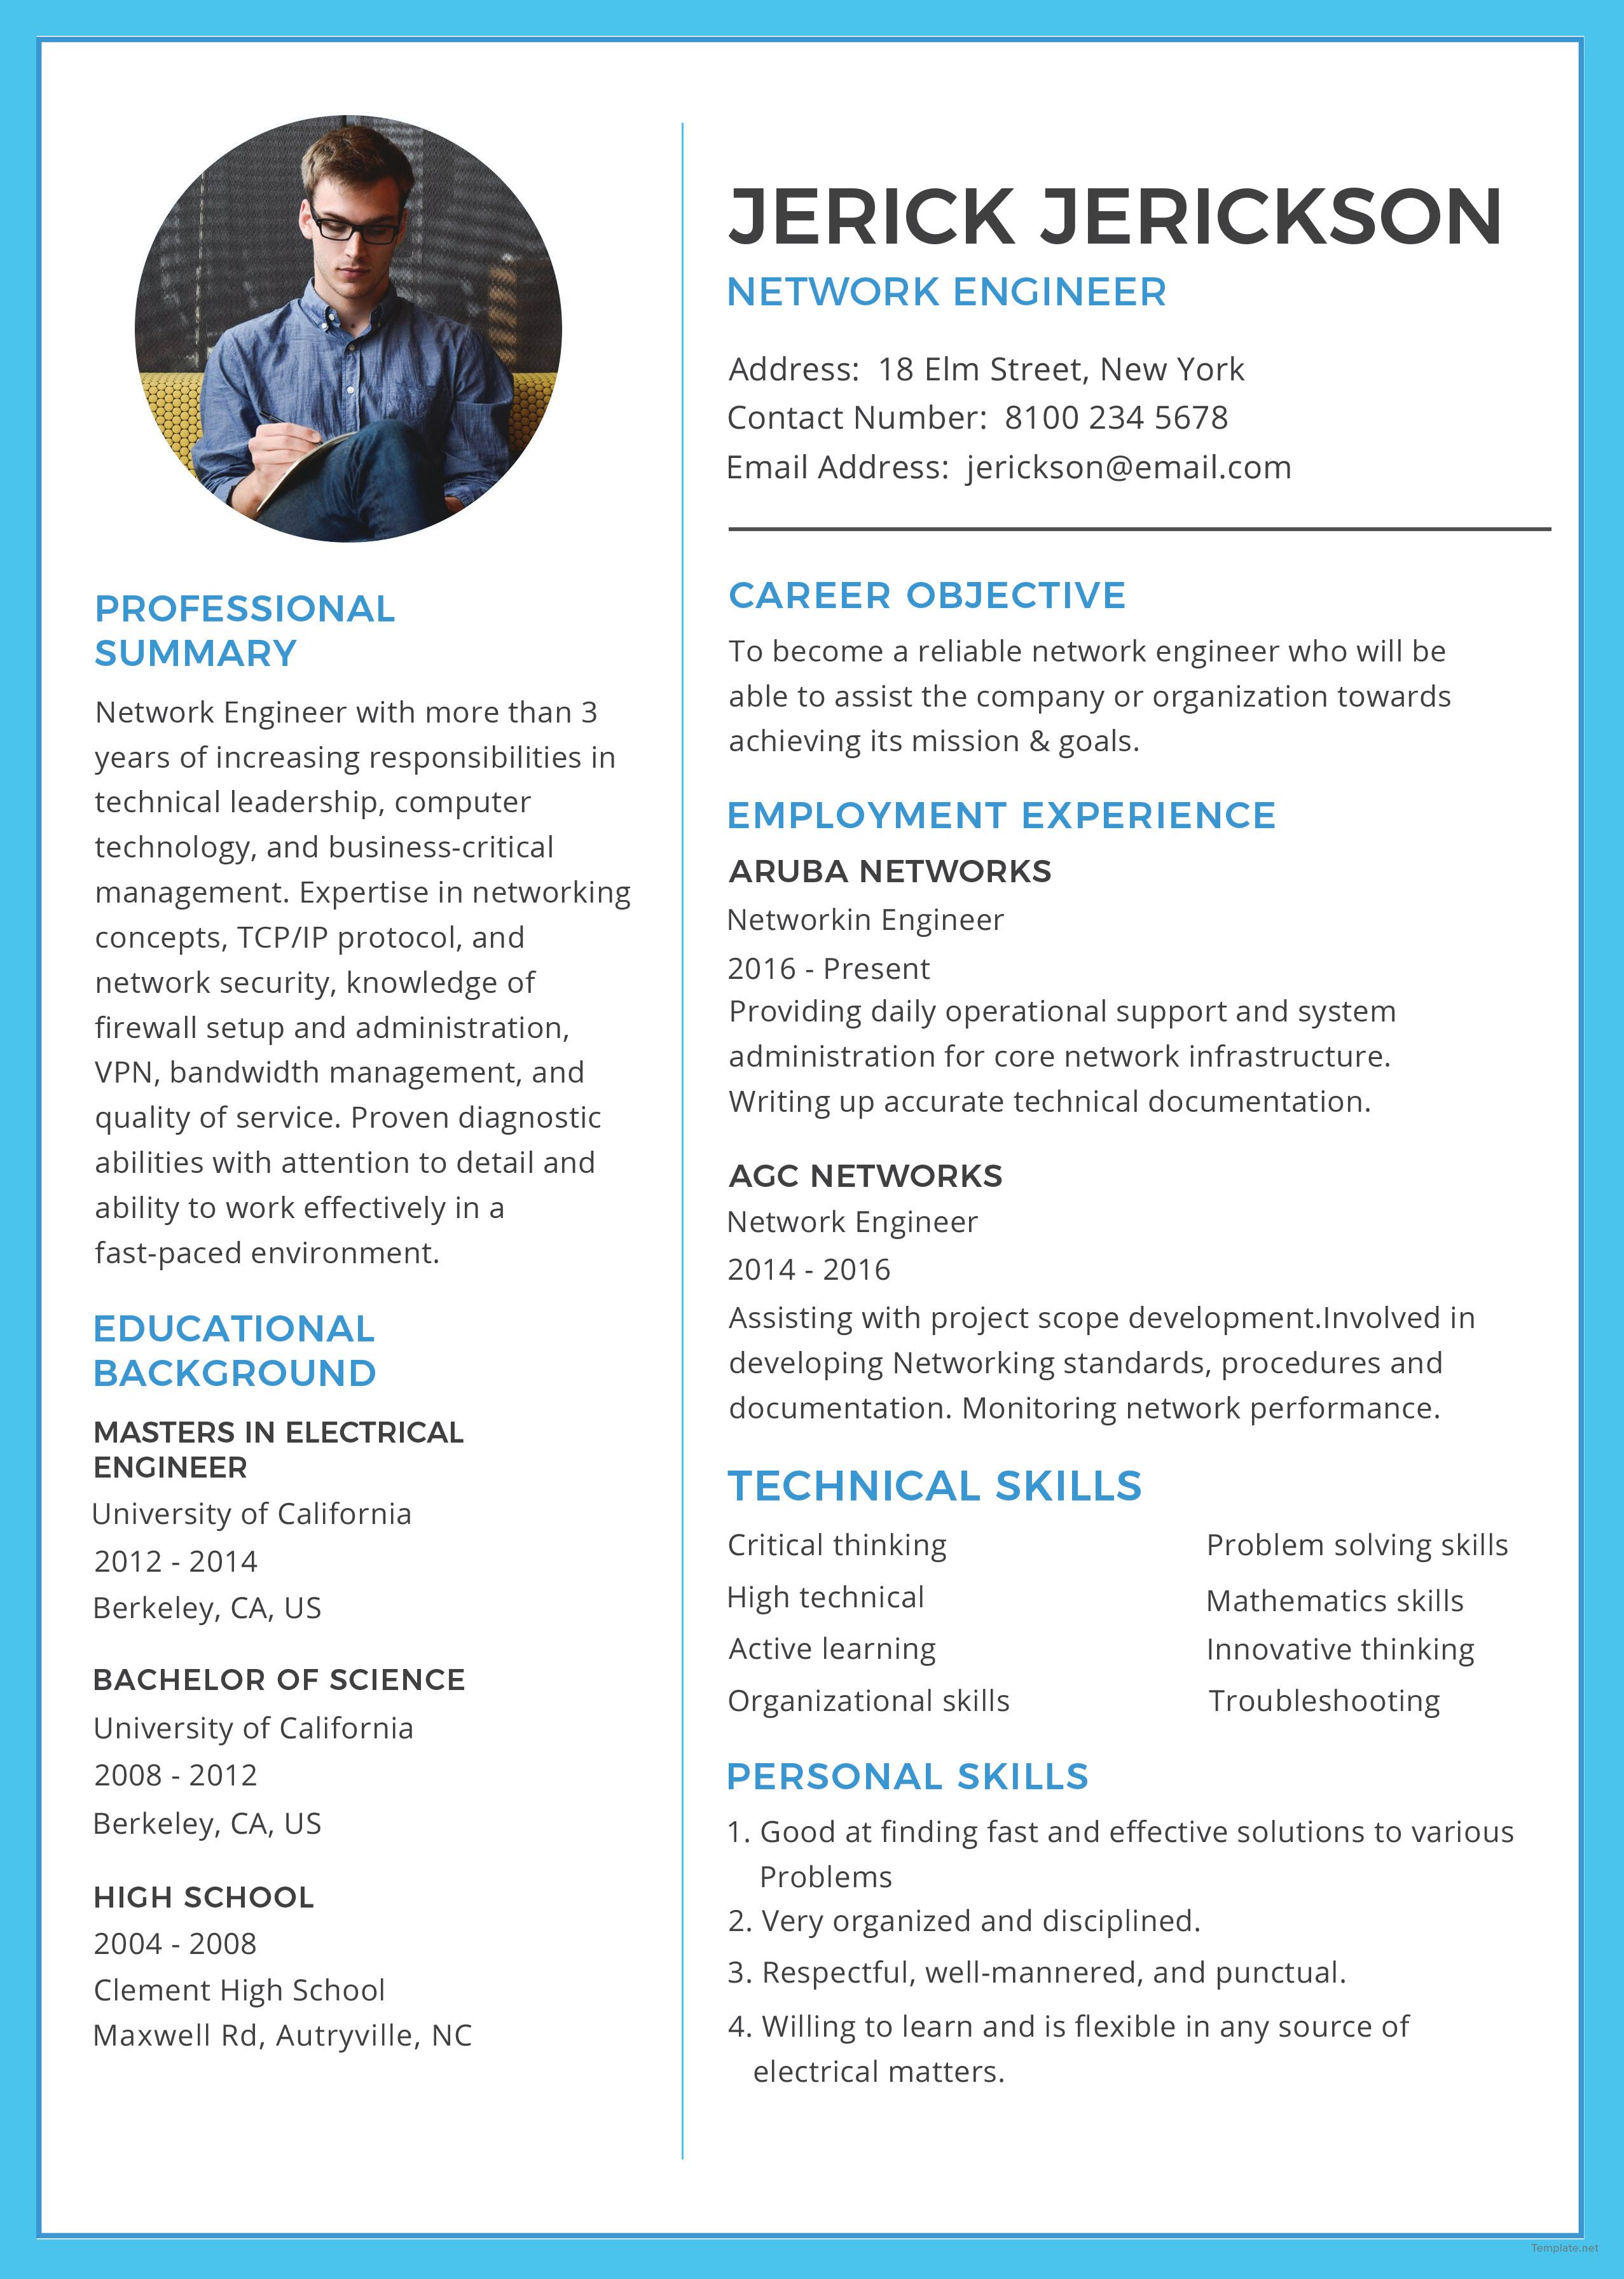 Free Basic Network Engineer Resume Cv Template Word Doc Psd Indesign Apple Mac Pages Illustrator Publisher